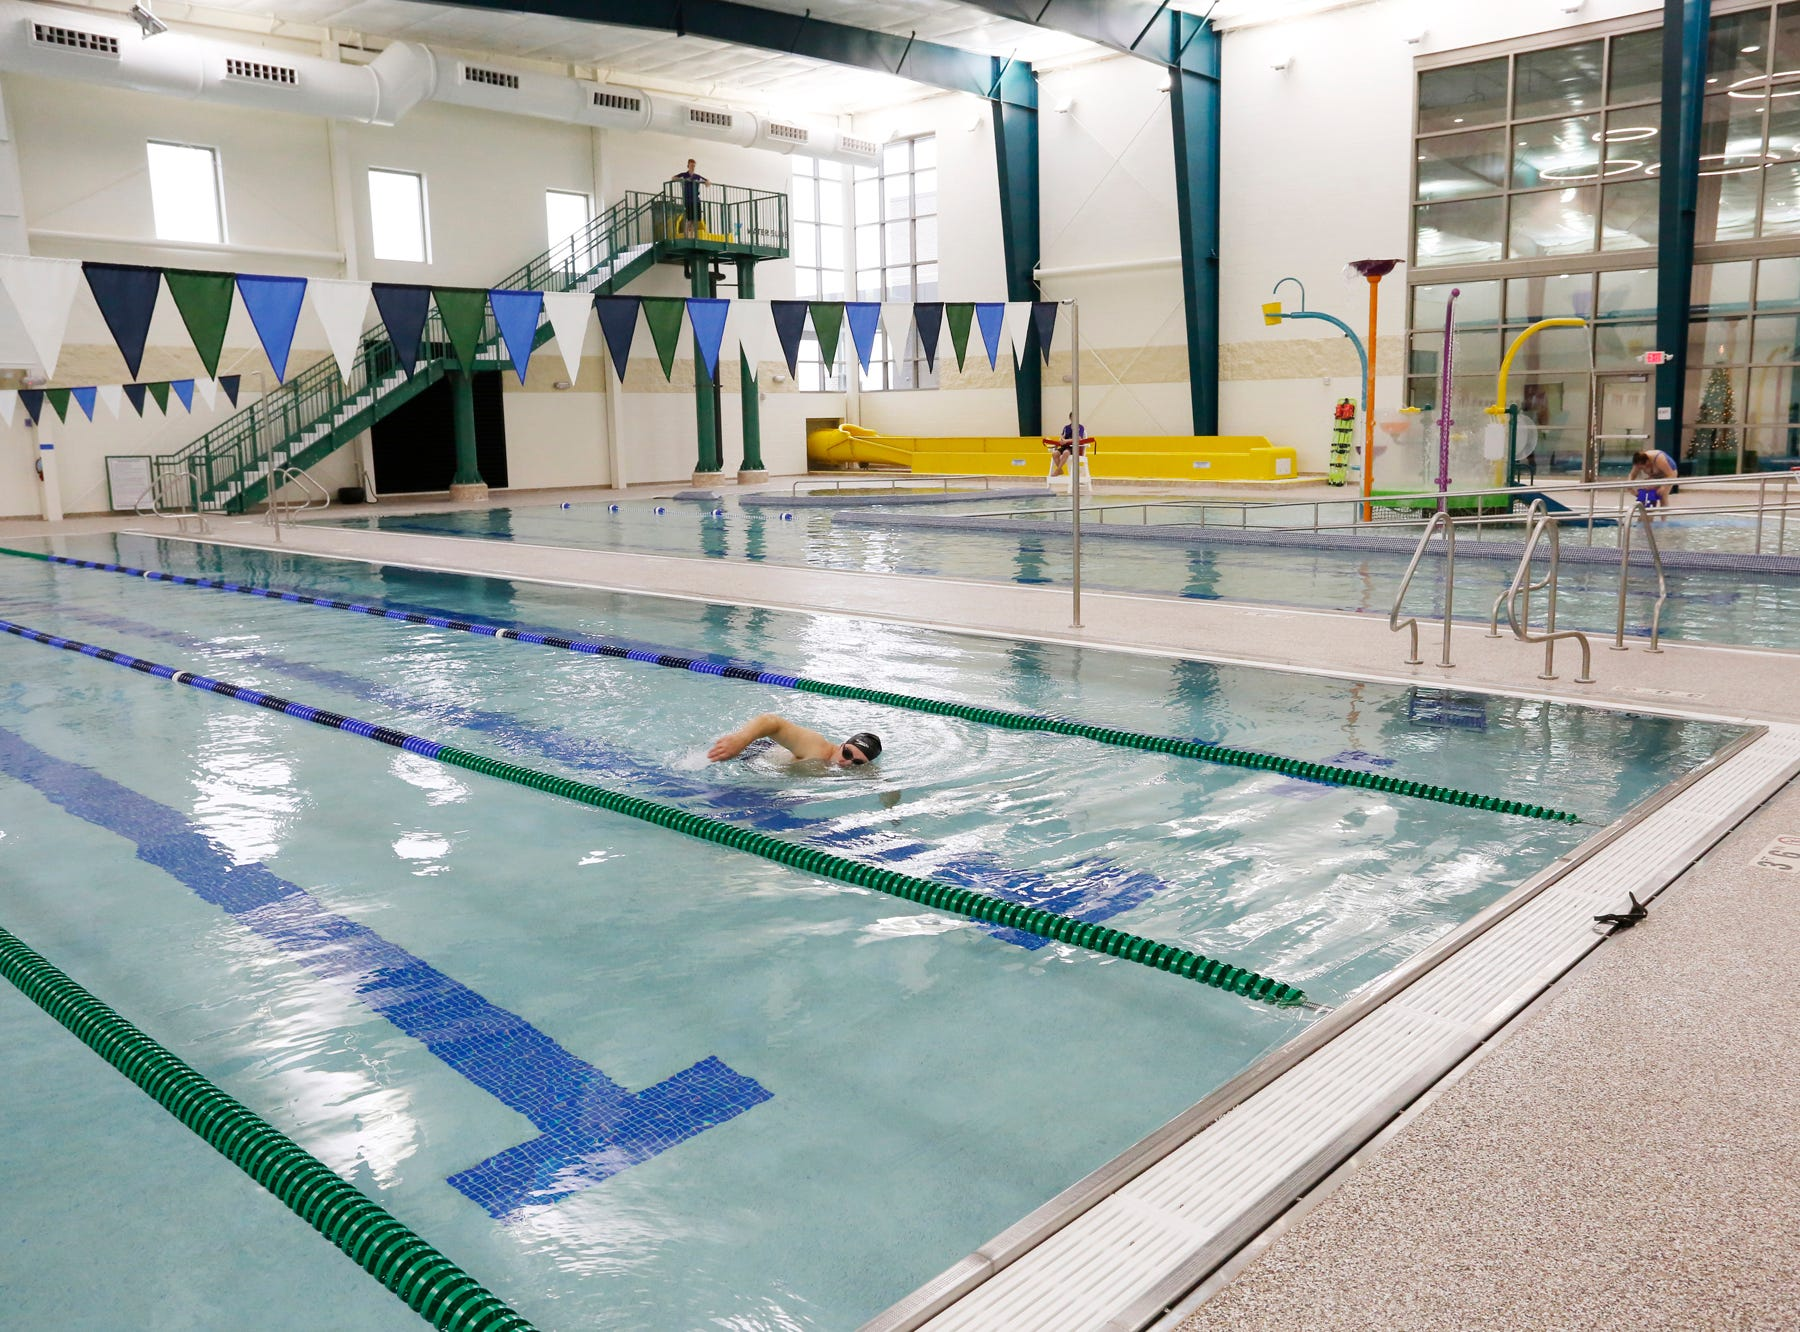 A swimmer enjoys the lap lanes Thursday, December 6, 2018, at the new Lafayette Family YMCA, 3001 S. Creasy Lane in Lafayette. The facility celebrated its grand opening Thursday.